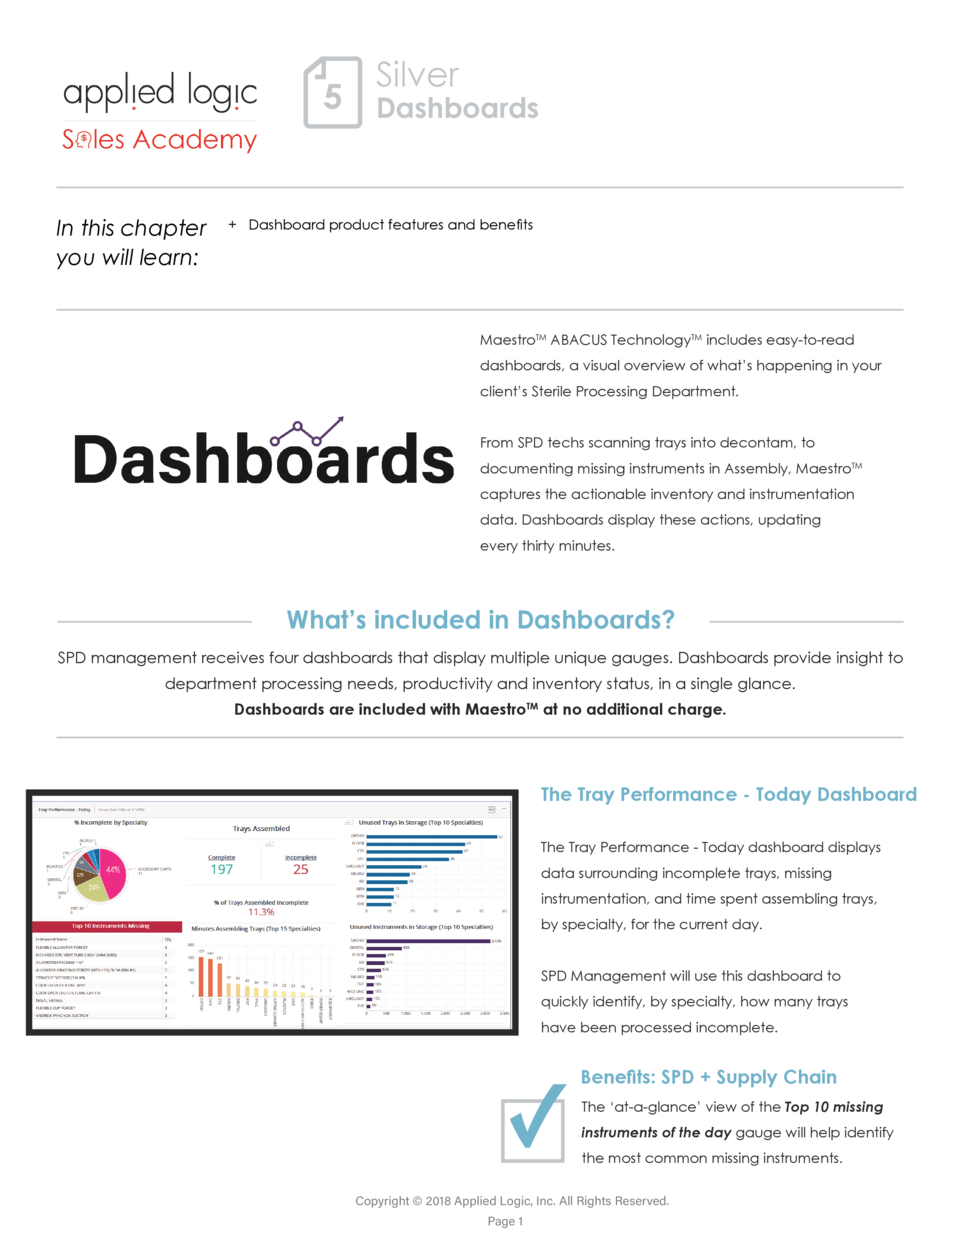 Silver  5 Dashboards In this chapter you will learn     Dashboard product features and benefits  MaestroTM ABACUS Technolo...